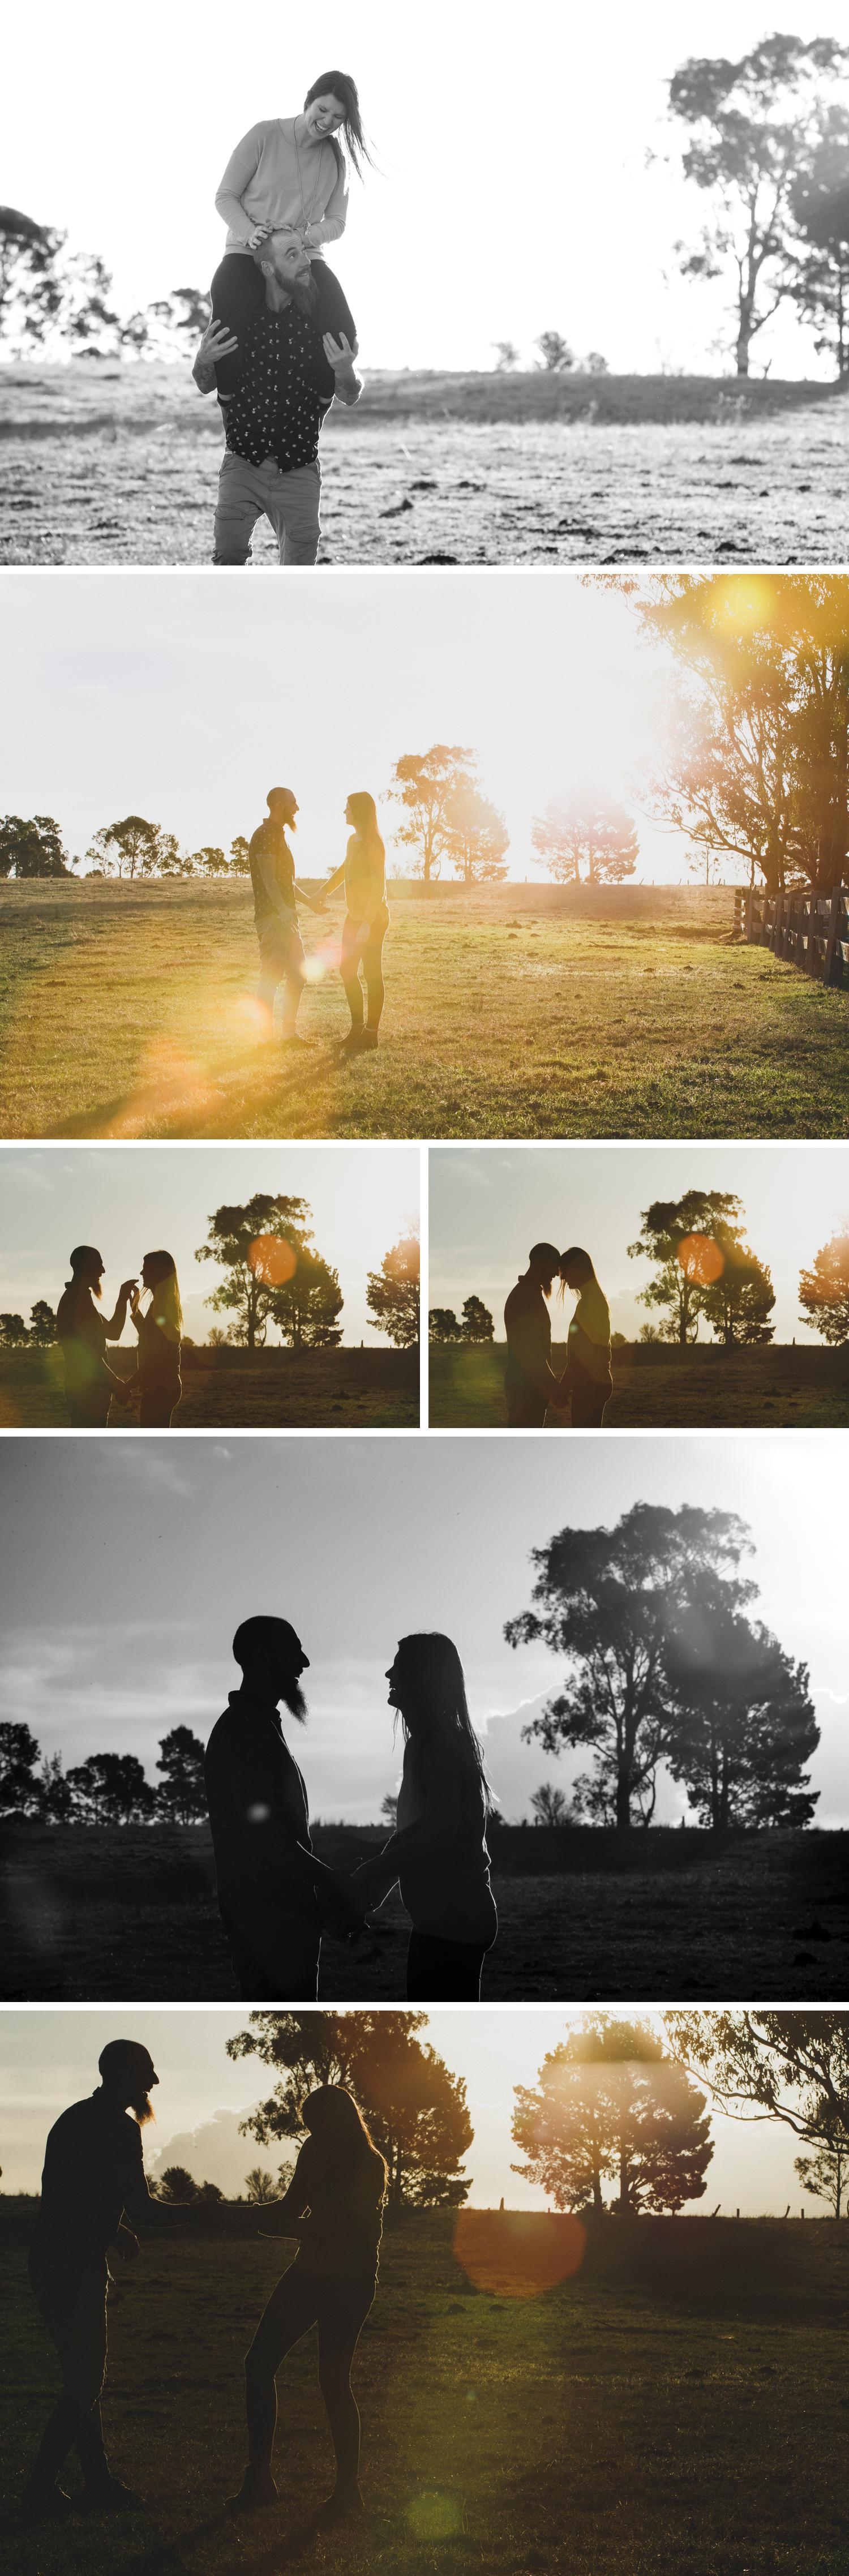 Bonnie Brae Farm Engagement Session by Danae Studios